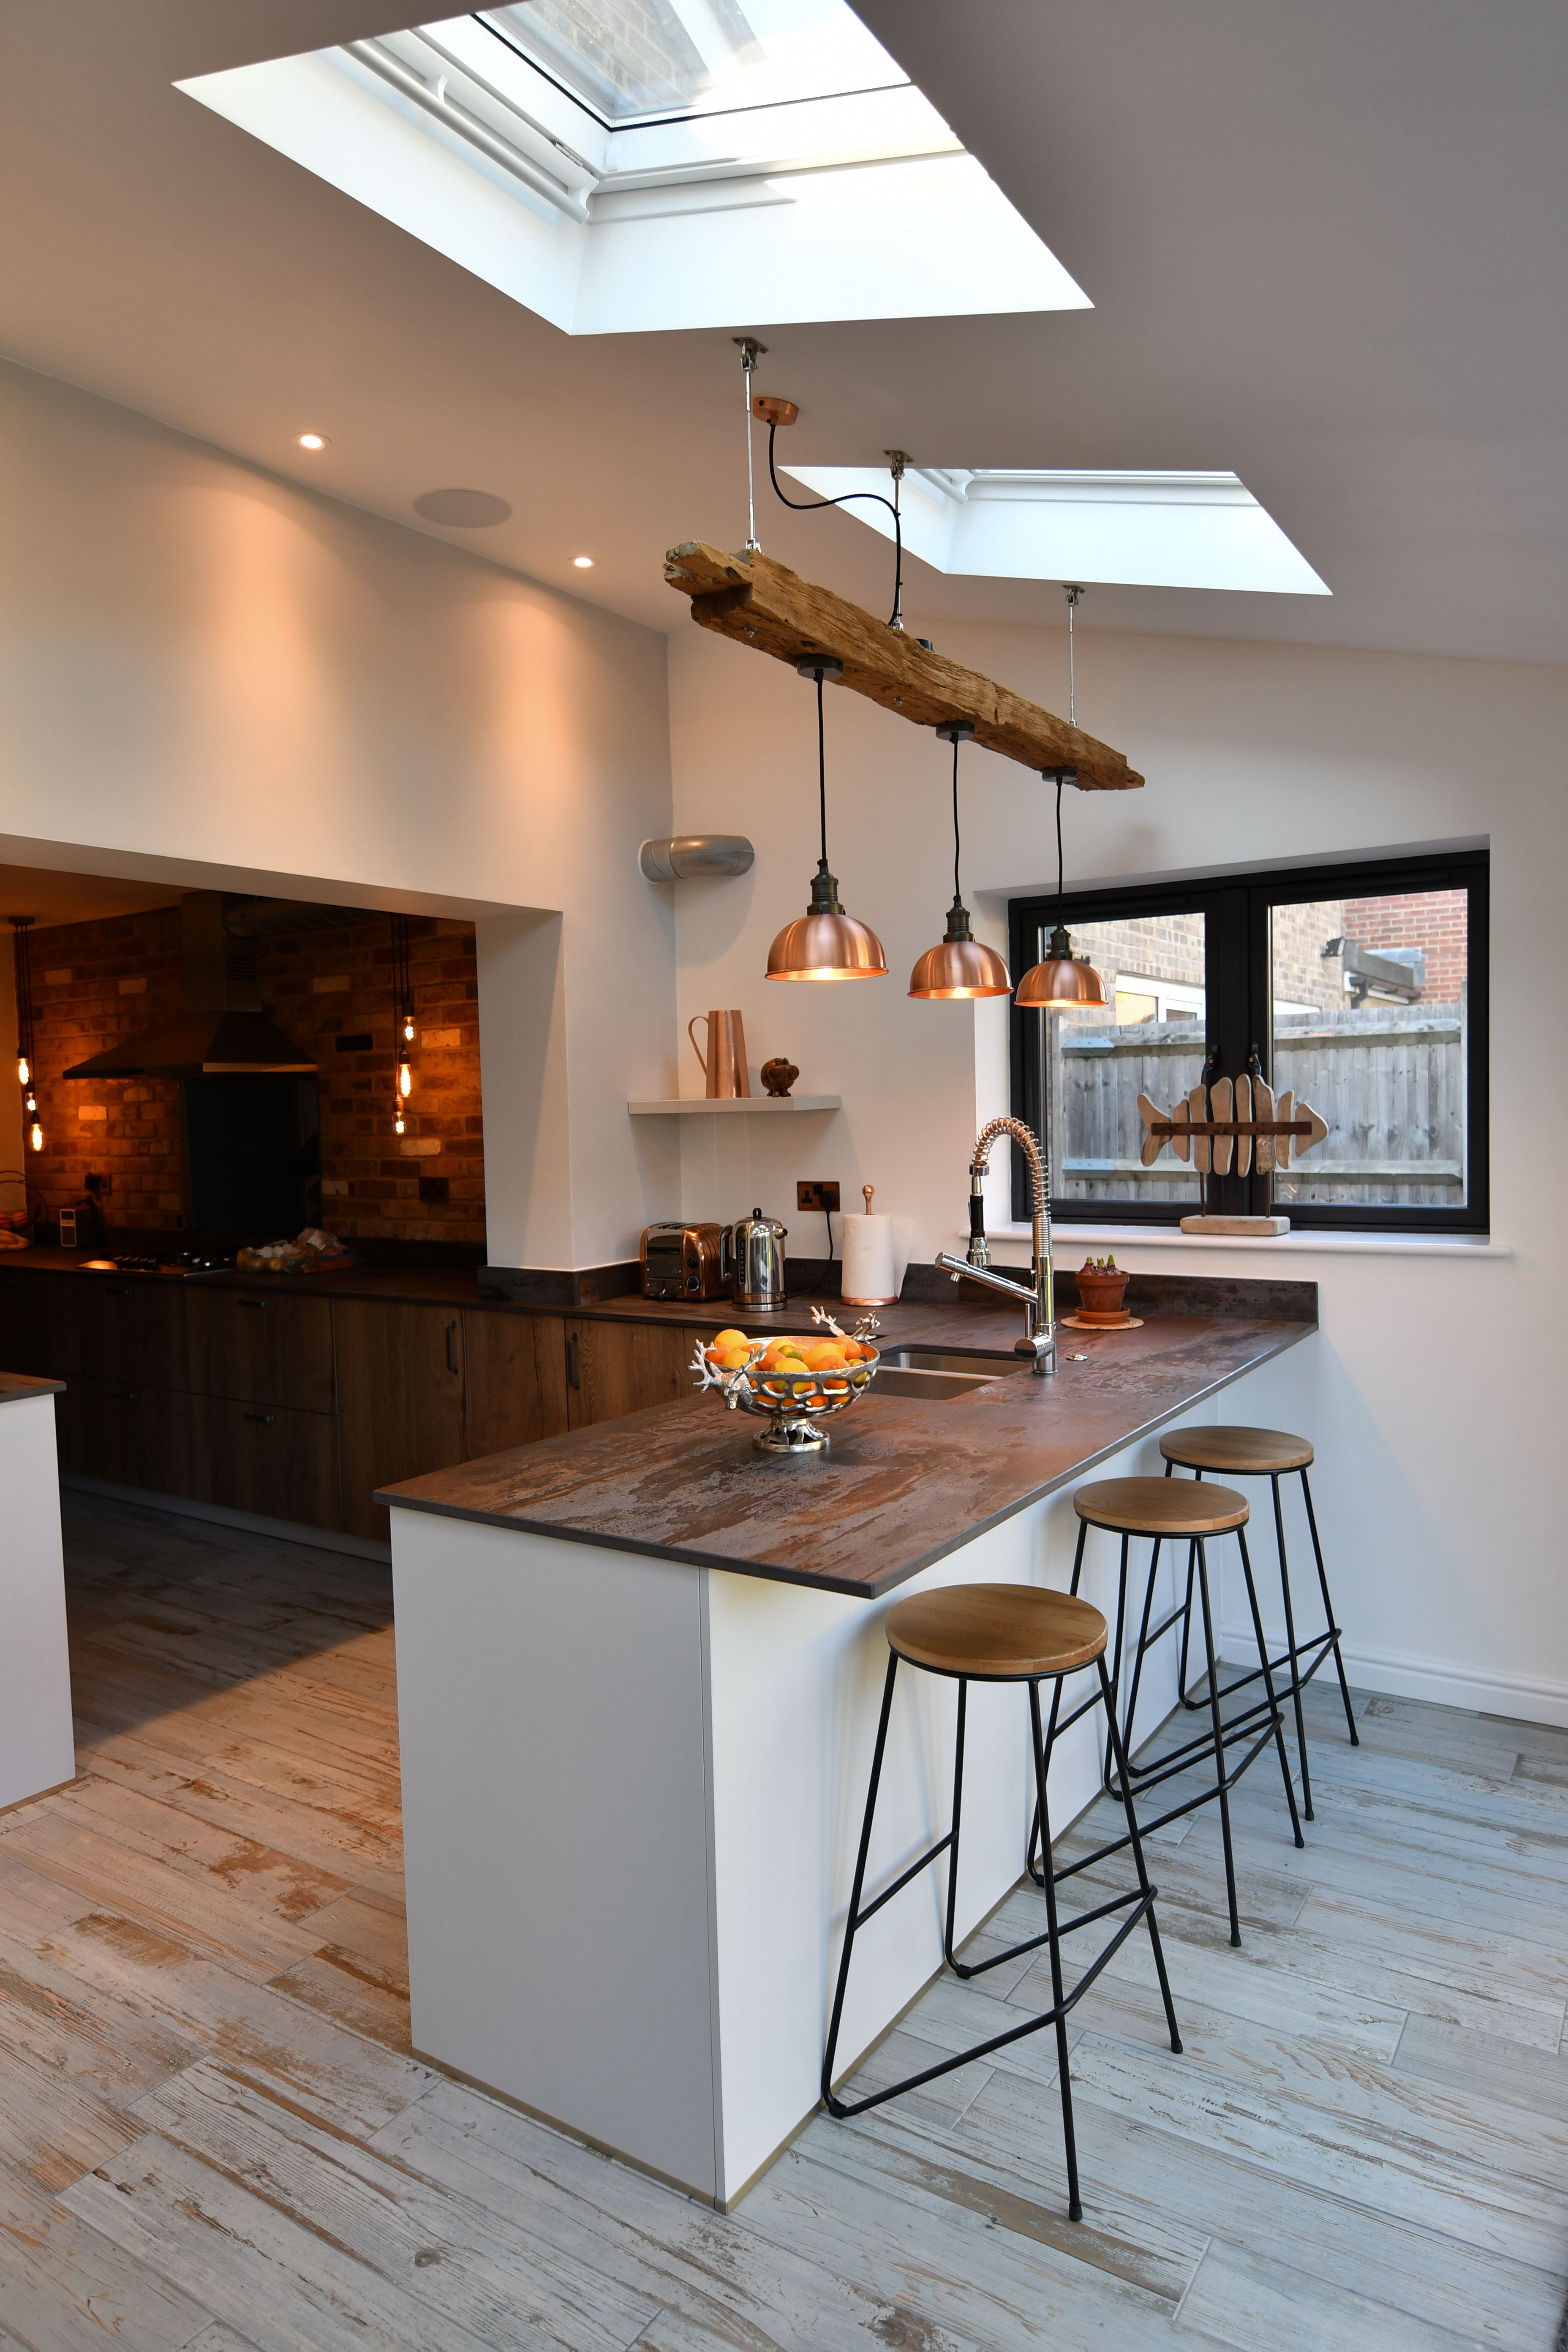 A trio of lights above a kitchen counter make for the perfect statement how incredible do these lights look embedded into a panel of wood